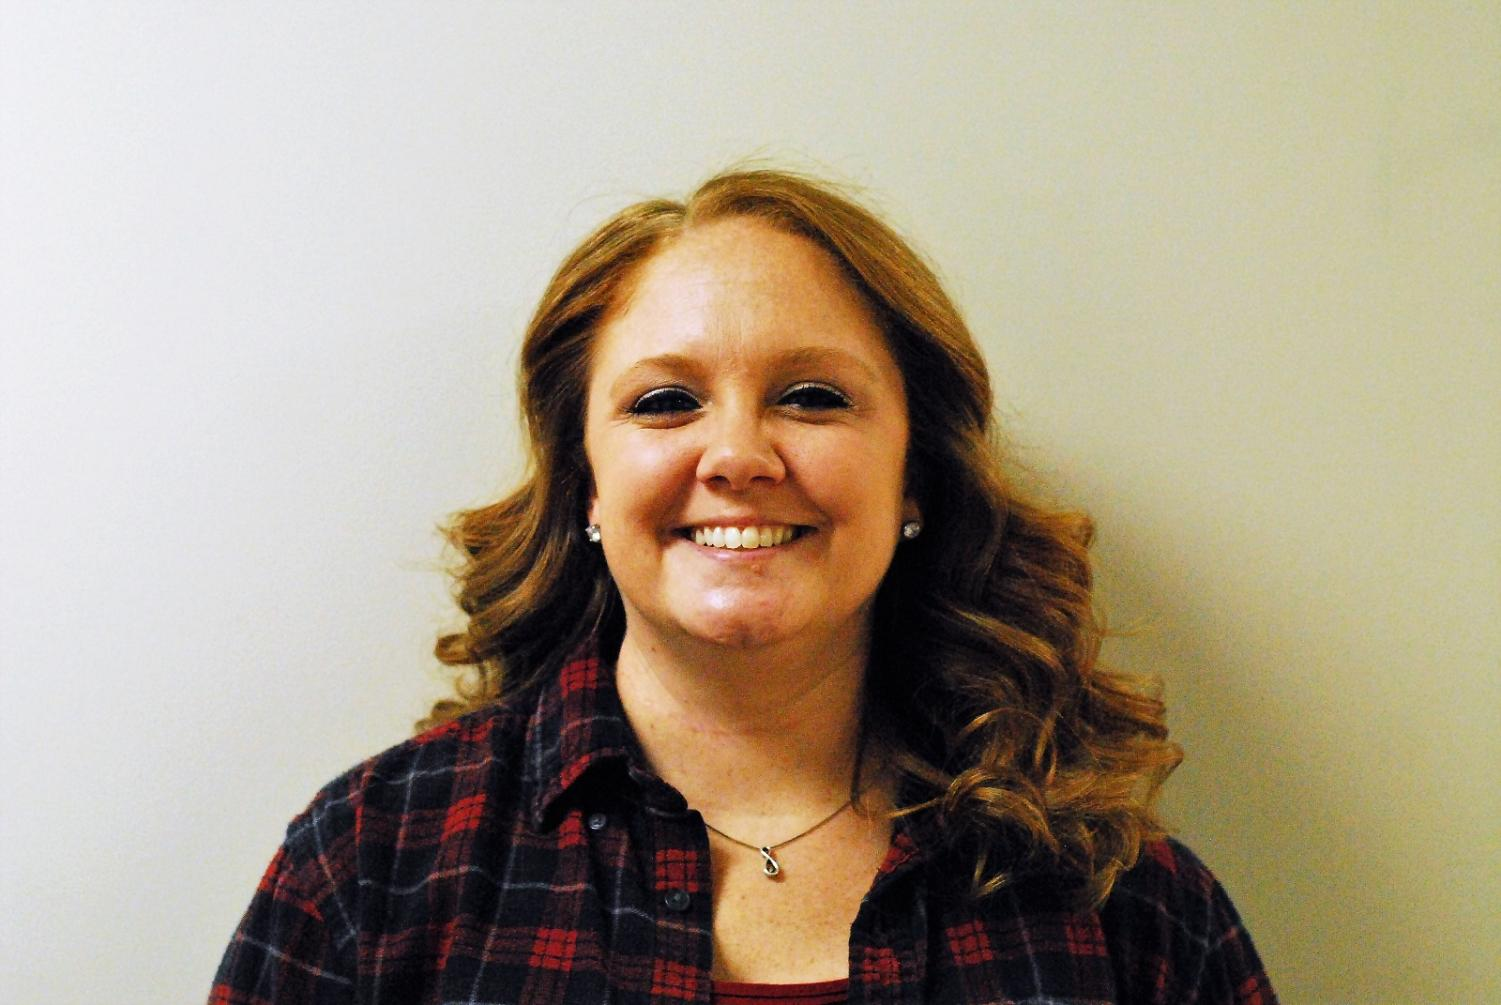 The CFHS English department has welcomed a new staff member, Morgan Schwarz.